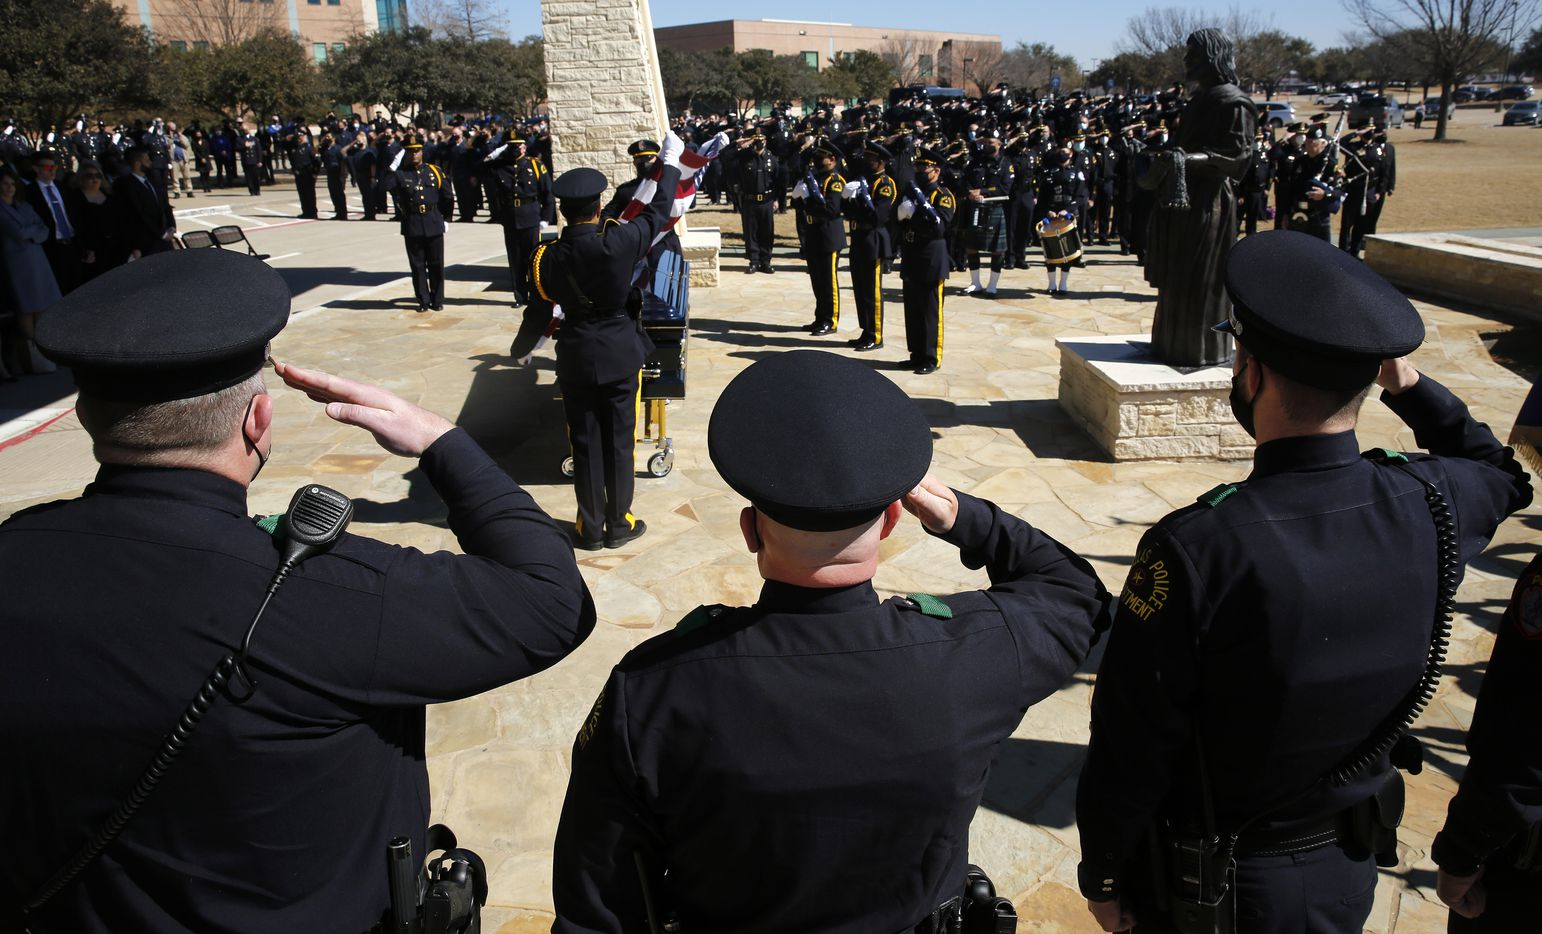 Dallas Police salute as the U.S. flag is removed from the casket following a funeral service for Dallas Police officer Mitchell Penton at Prestonwood Baptist Church in Plano, Monday, February 22, 2021. Penton was killed Saturday, Feb. 13, 2021, in a crash involving a drunk driving suspect. (Tom Fox/The Dallas Morning News/Pool)